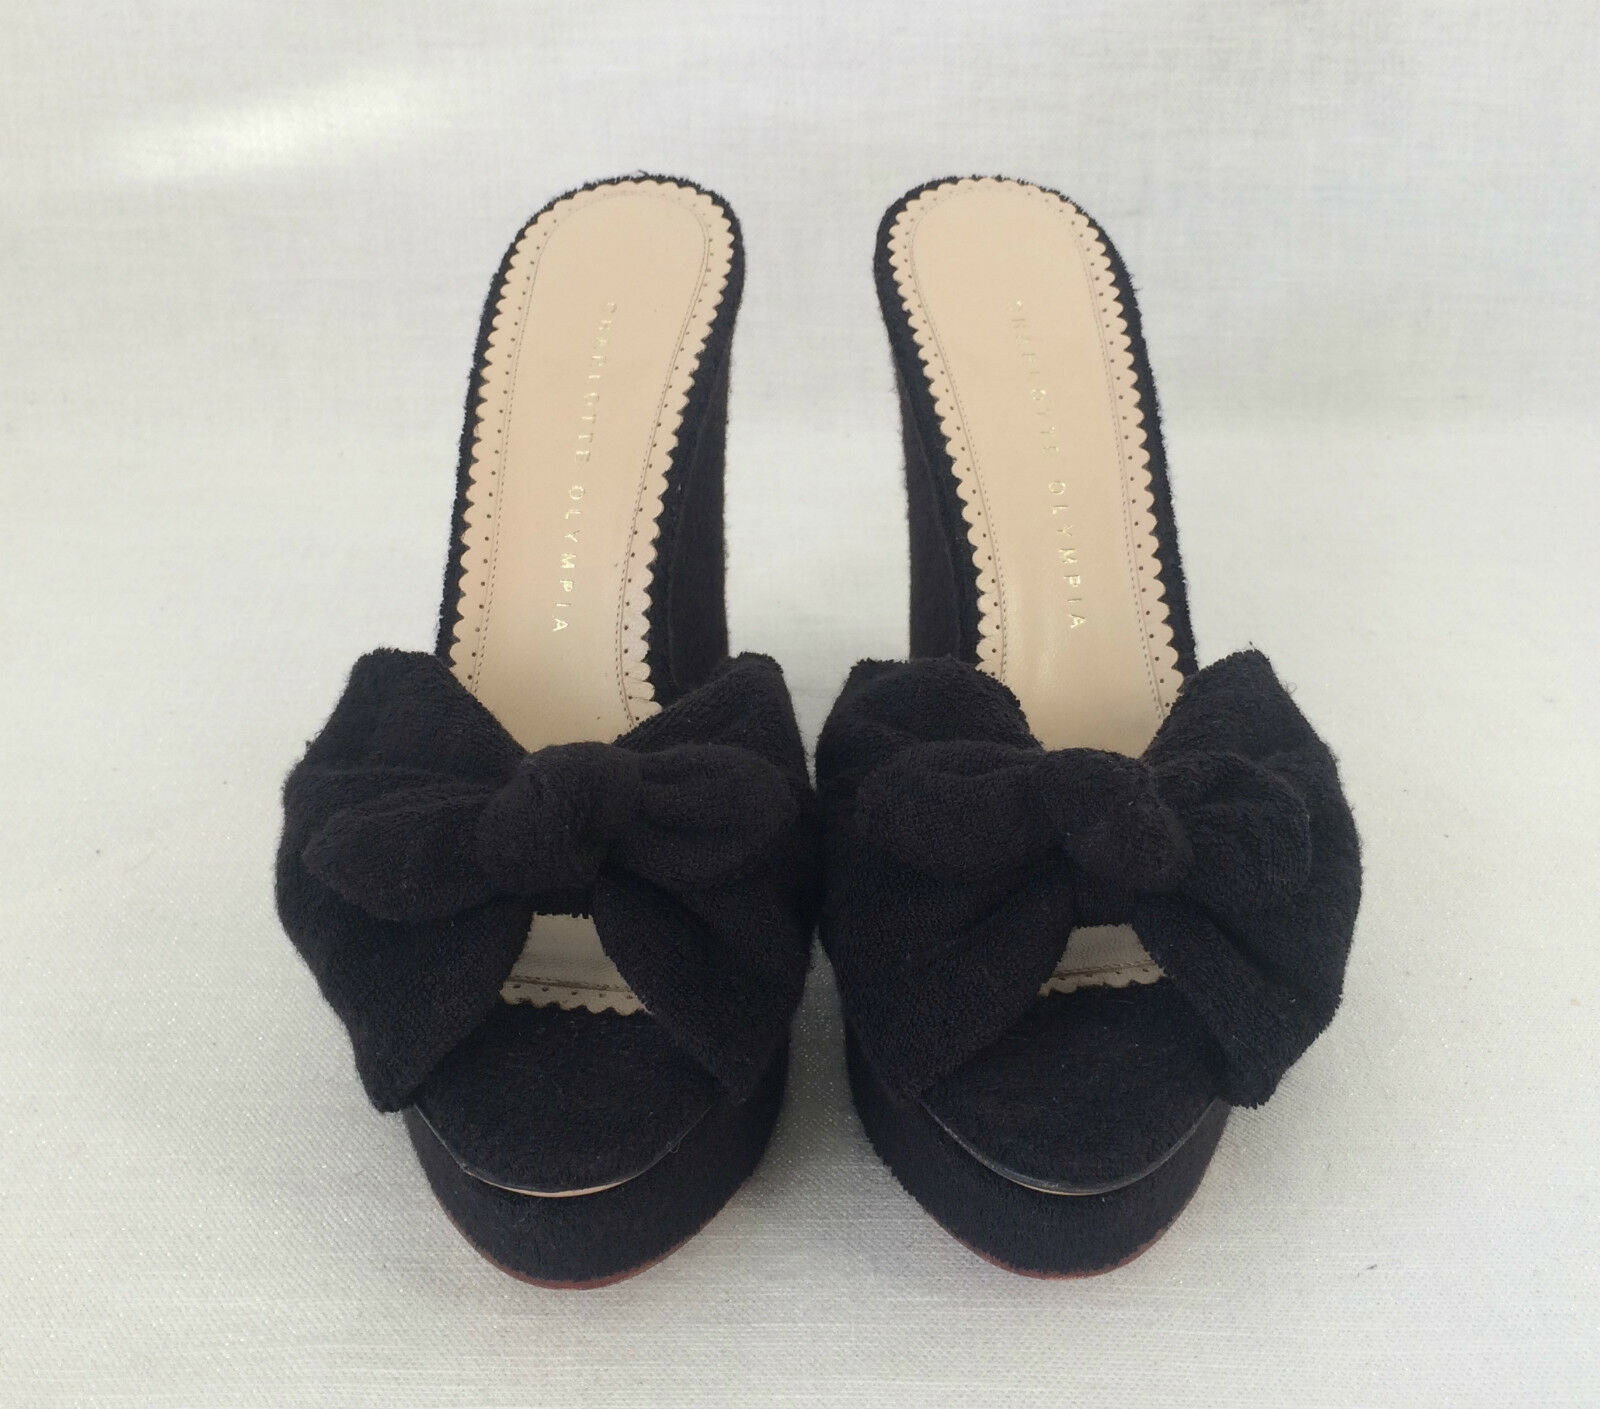 CHARLOTTE OLYMPIA noir WEDGES WEDGES WEDGES SEXY SANDALS JAYNE KNOT TERRY. Sz 40 5da822